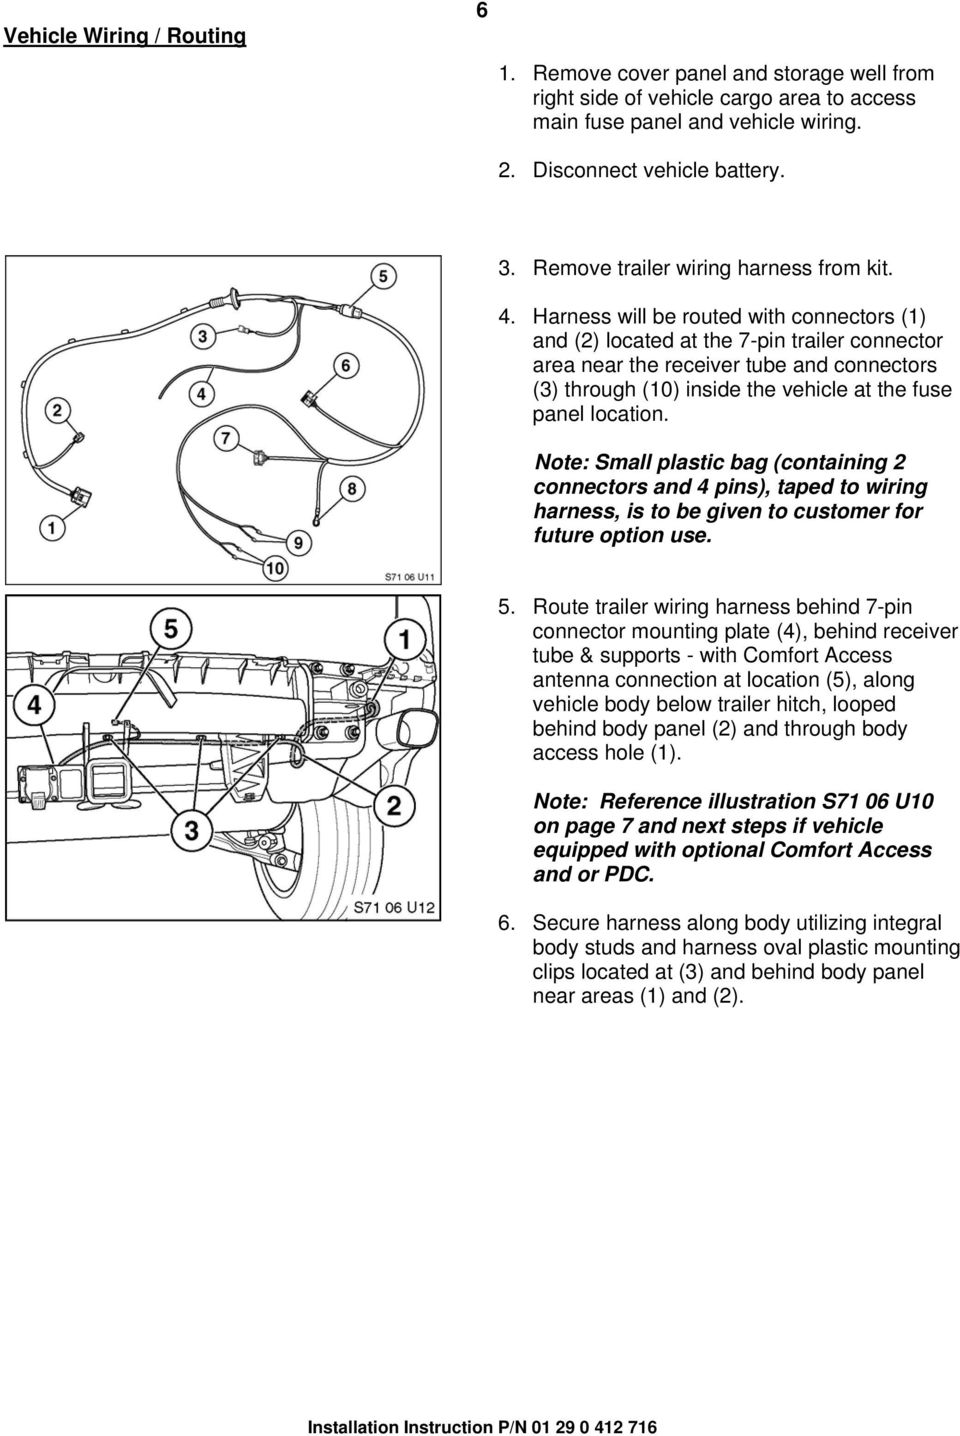 Installation Instructions Pdf Typical 4 Pin Trailer Wiring Harness Will Be Routed With Connectors 1 And 2 Located At The